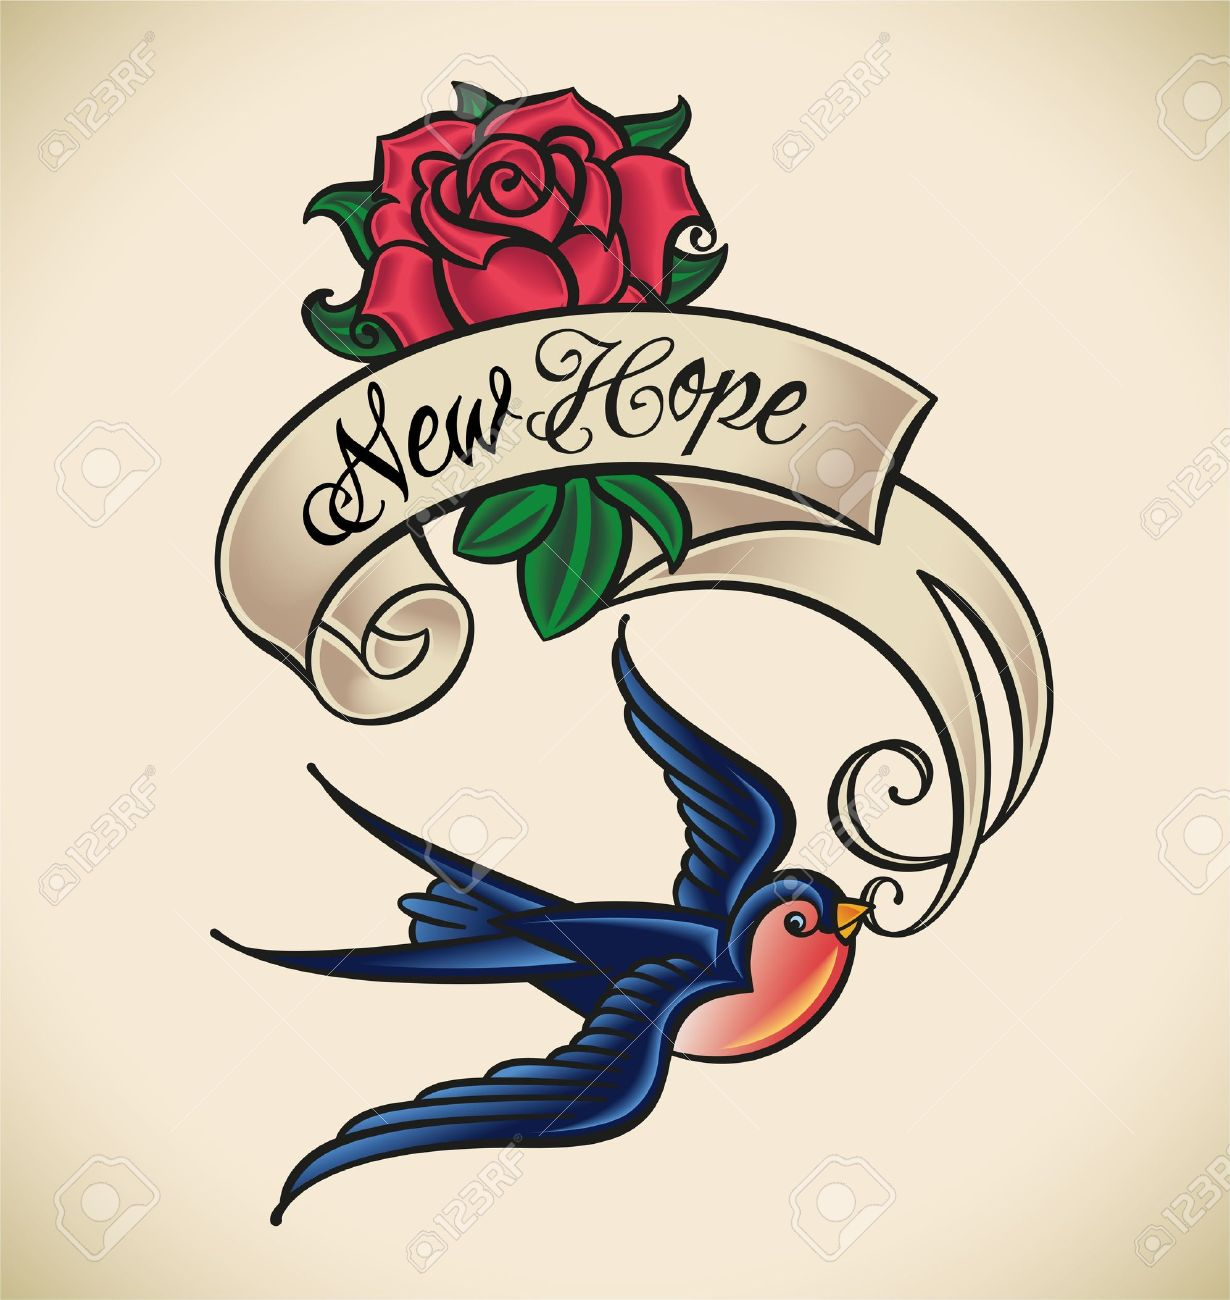 51 excellent rose swallow tattoos designs with meanings. Black Bedroom Furniture Sets. Home Design Ideas